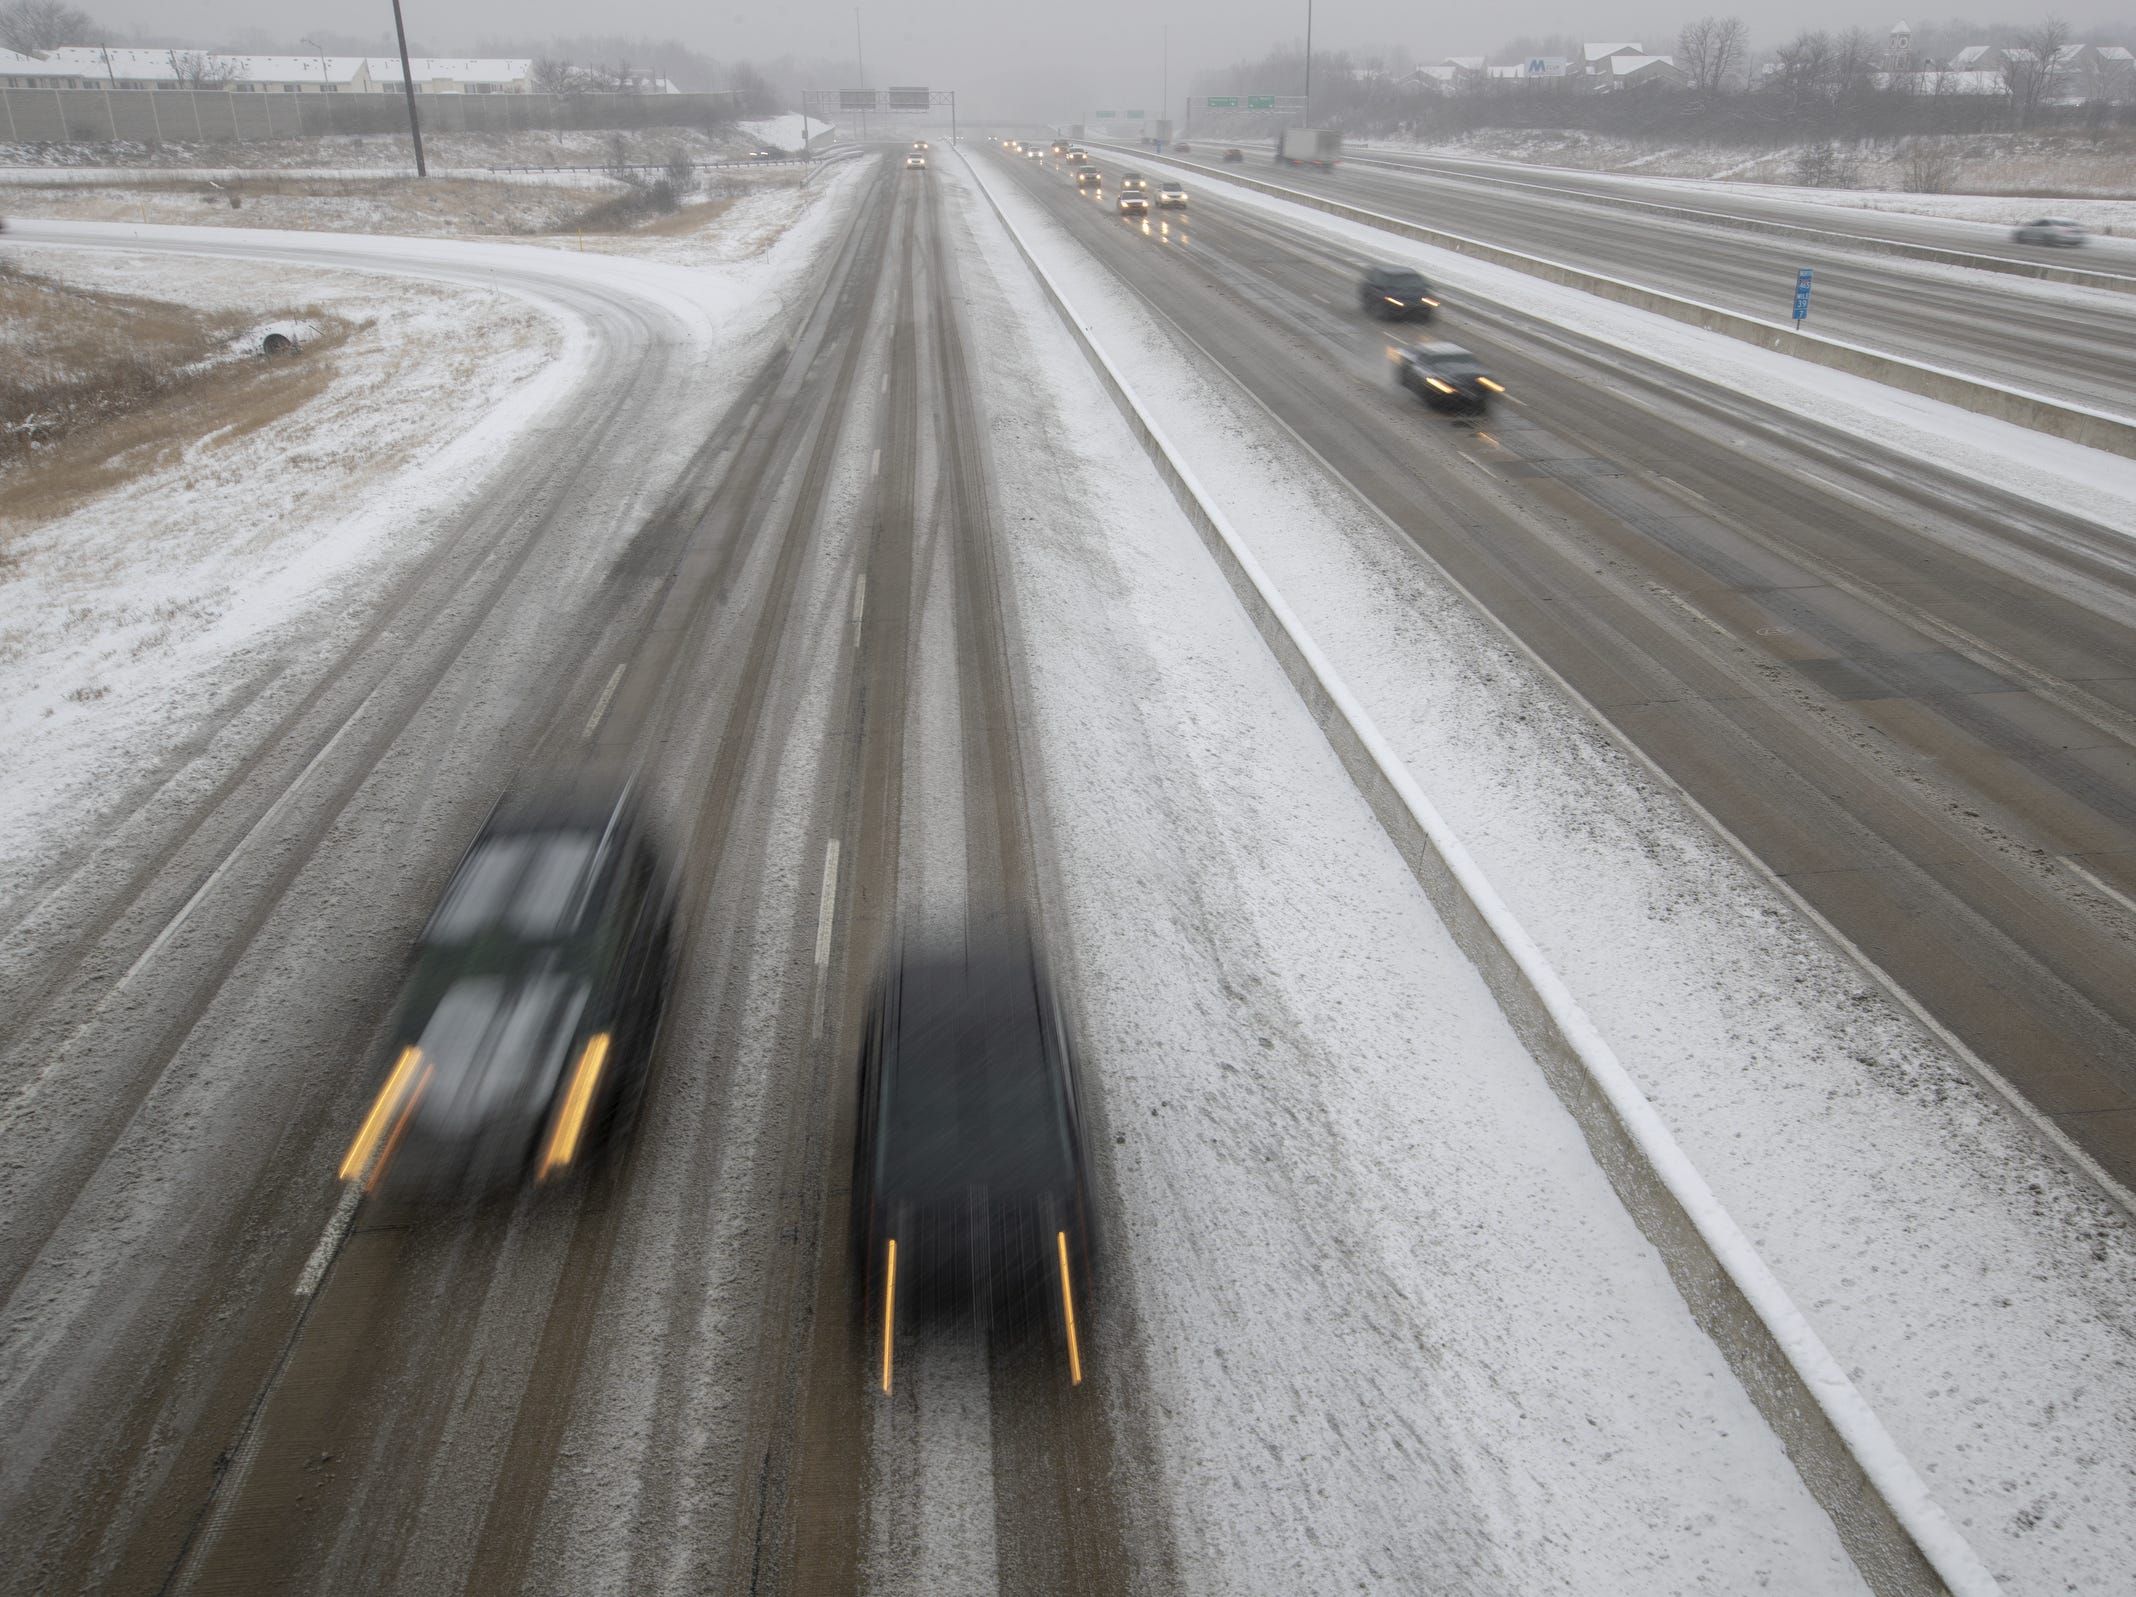 Cars on 465 on the city's east side, on a day where 5-7 inches of snow is expected to fall in Central Indiana, Indianapolis, Saturday, Jan. 12, 2019.